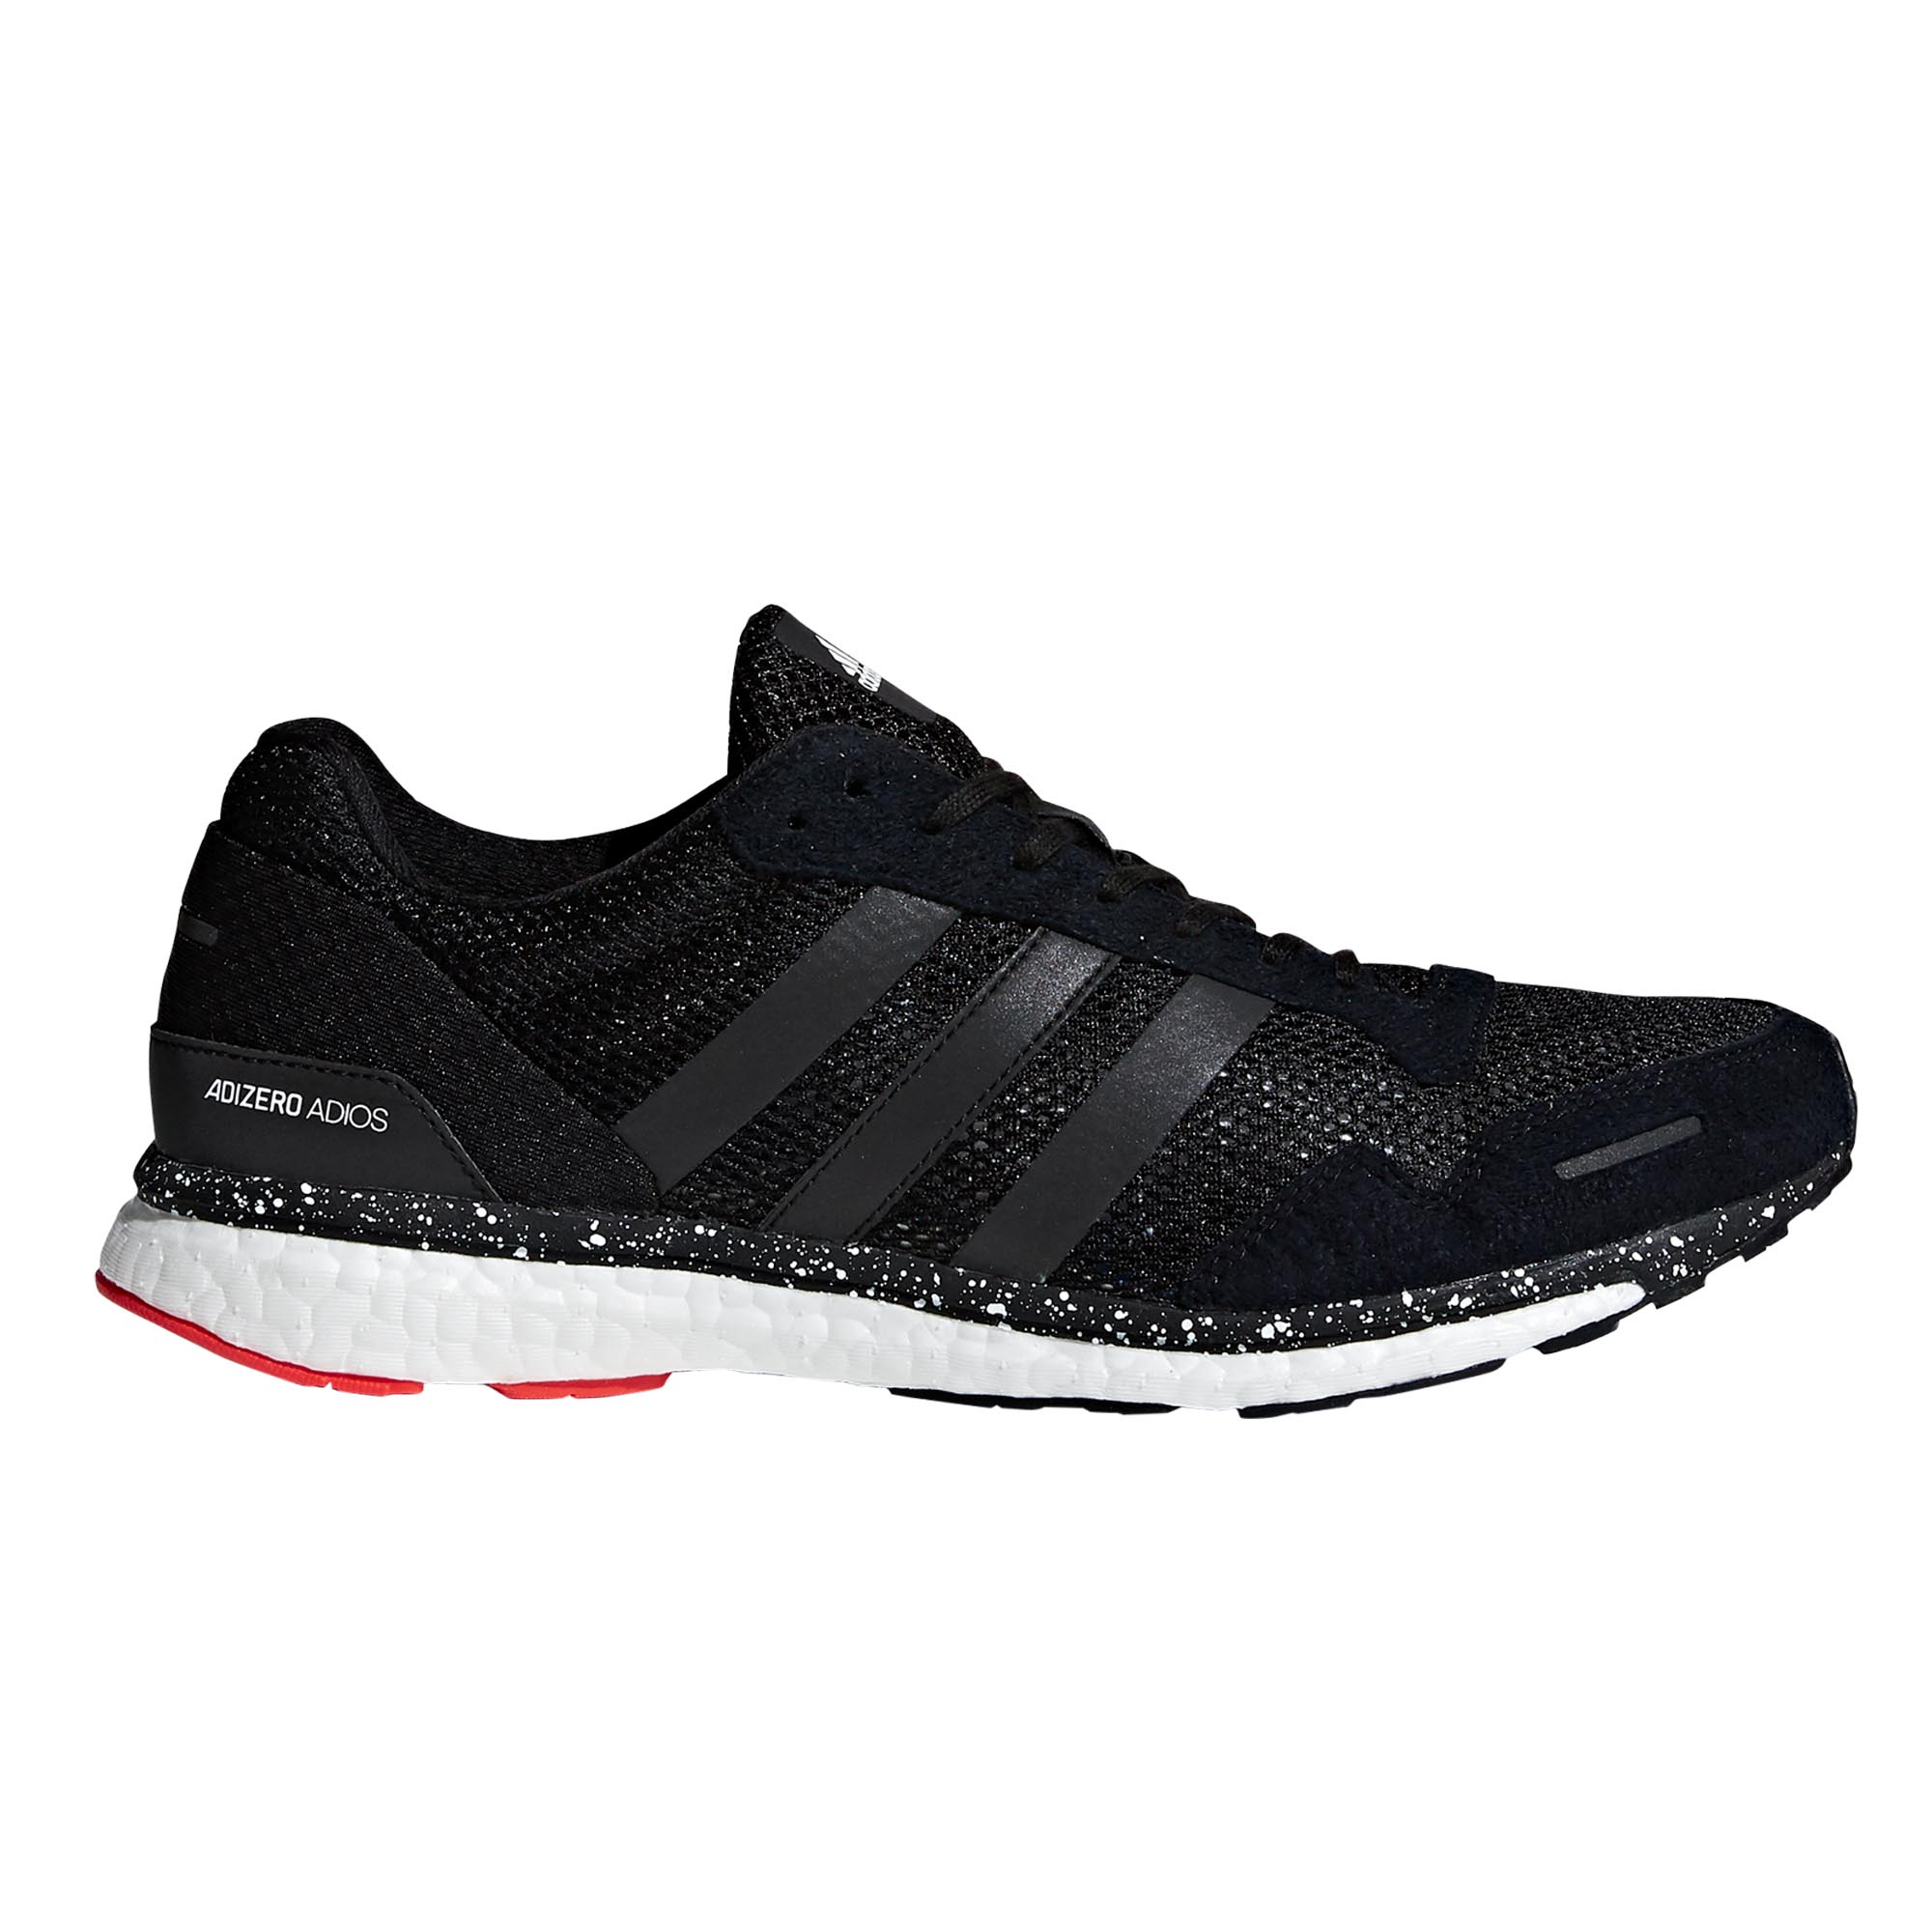 b404c17a092d4 Image is loading adidas-adiZero-Adios-3-Mens-Running-Trainer-Shoe-